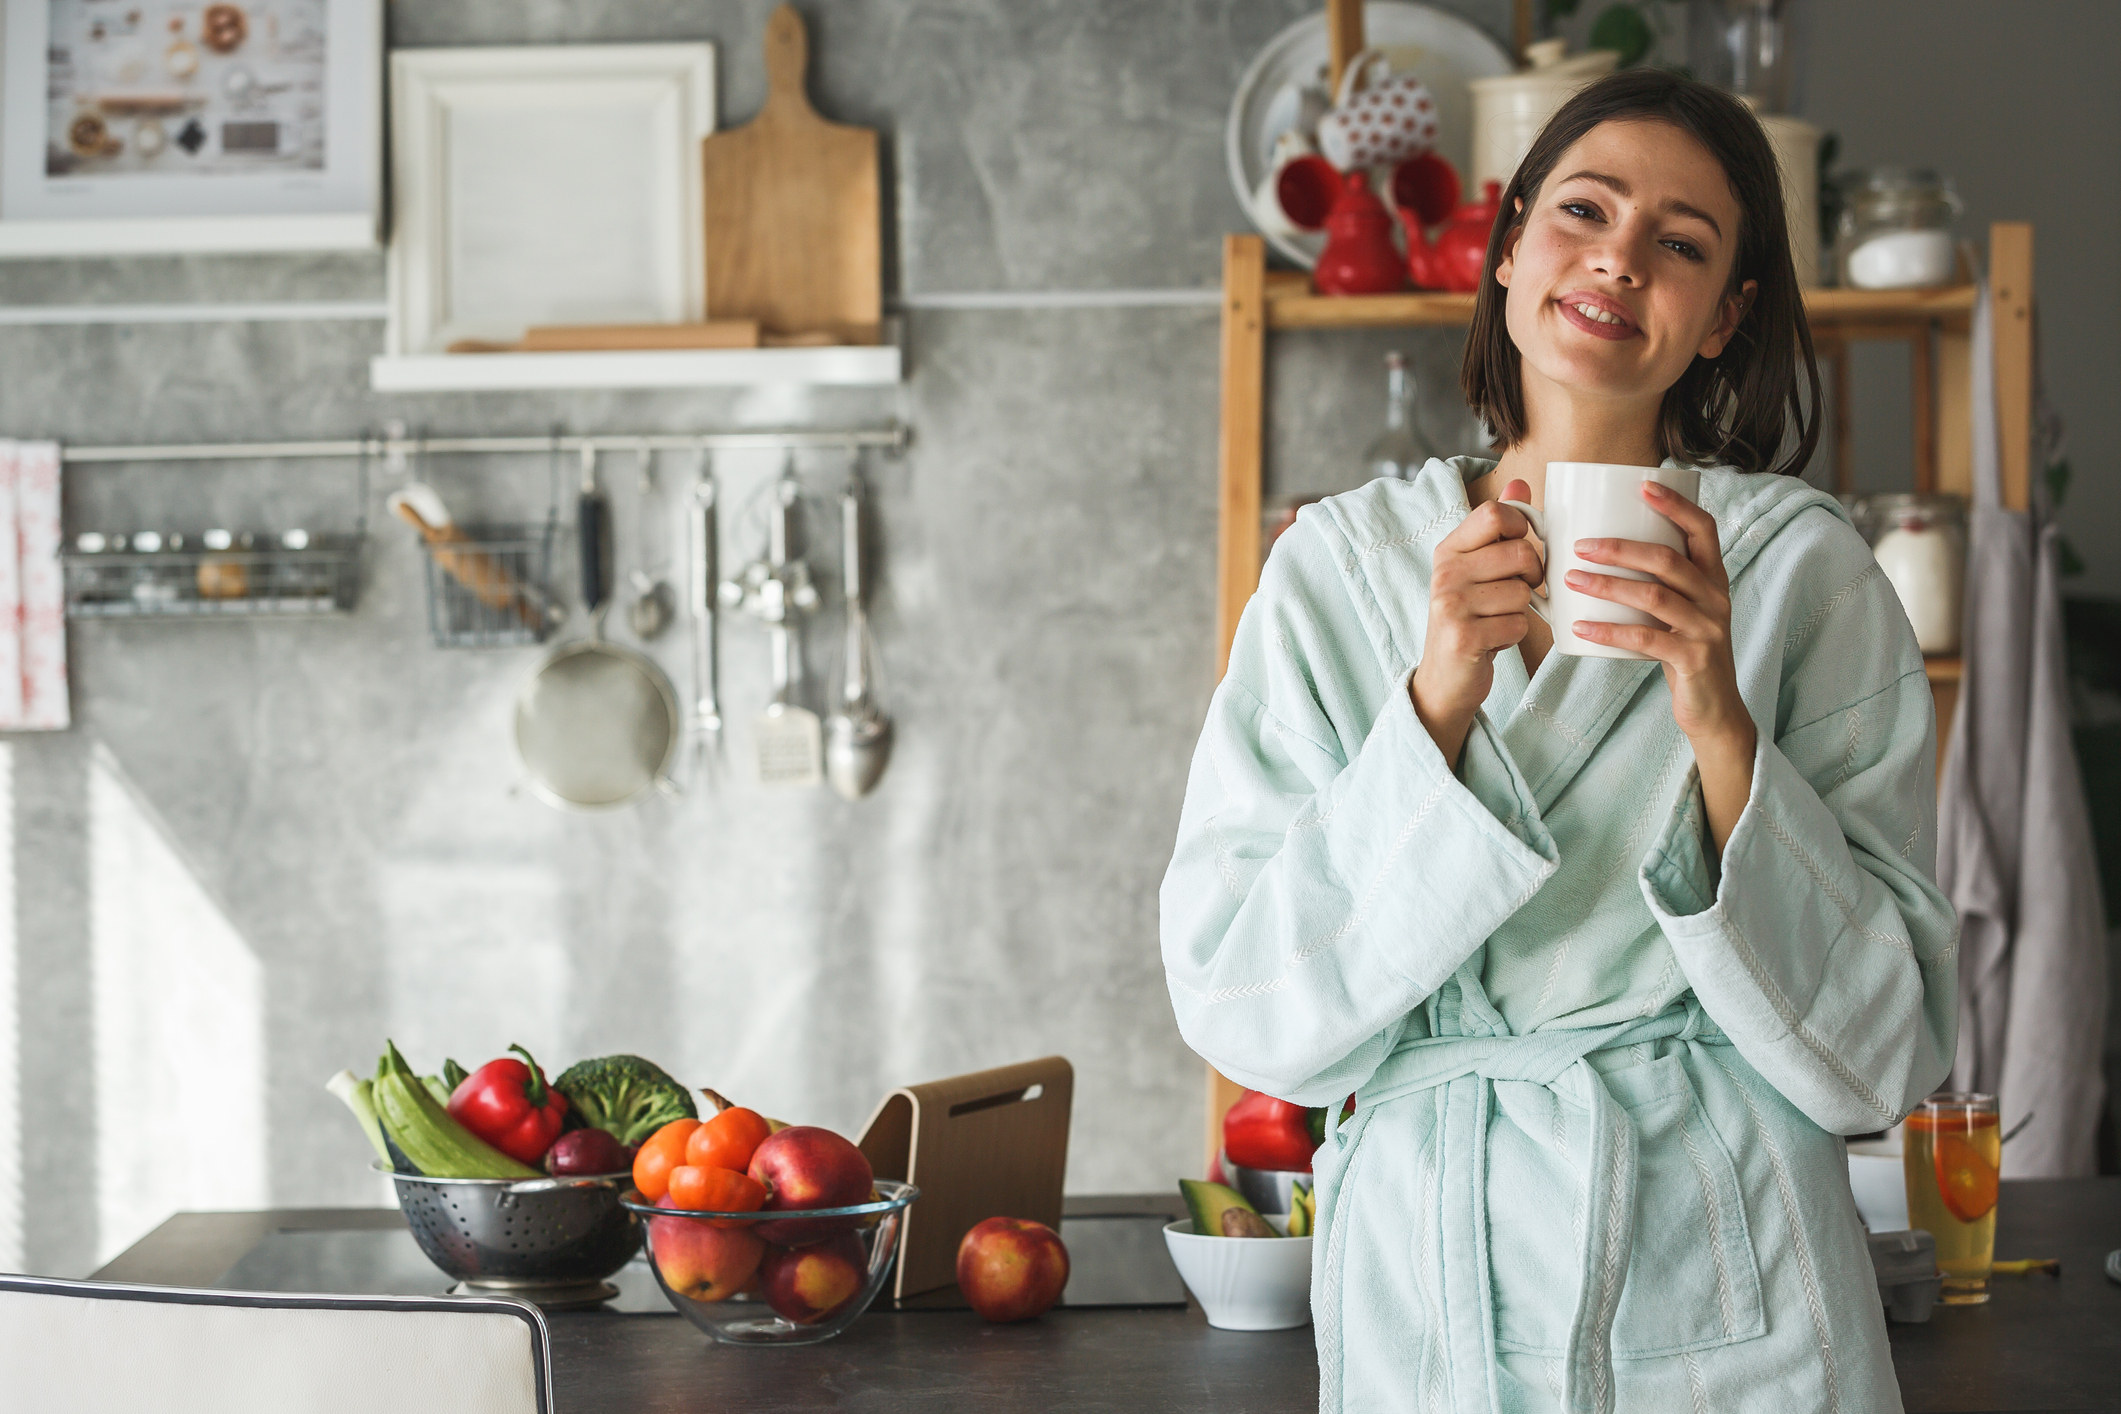 Copy space shot of a smiling woman wearing bathrobe and holding a cup in the kitchen.